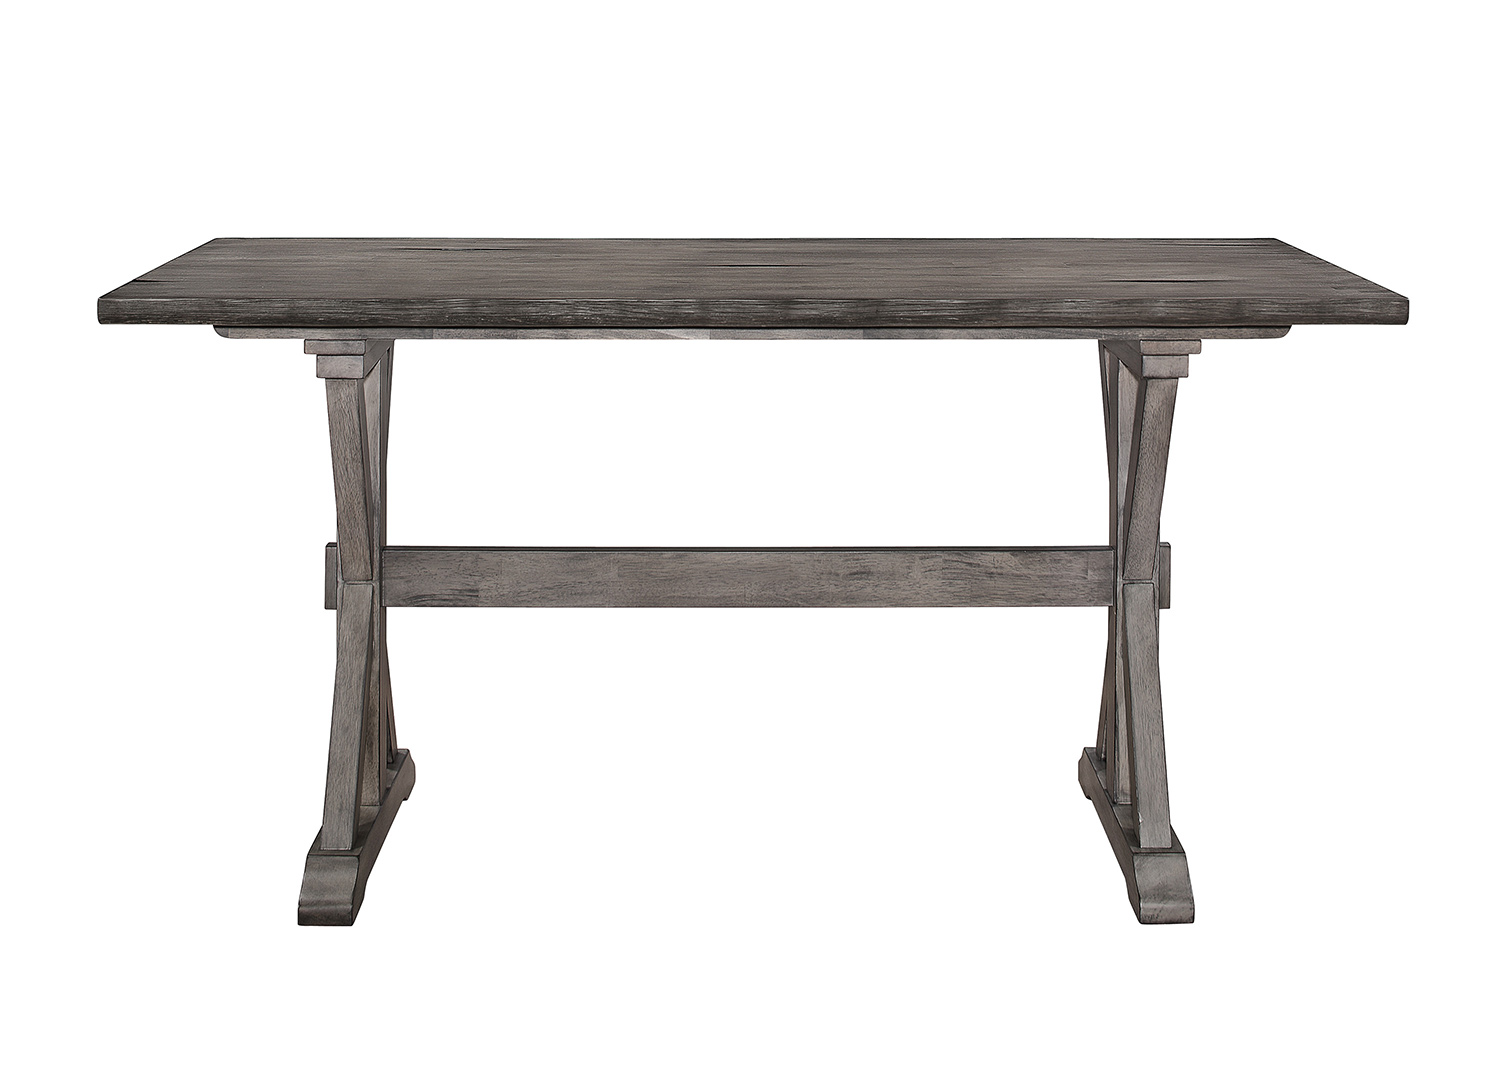 Homelegance Amsonia Counter Height Table - Rustic Gray